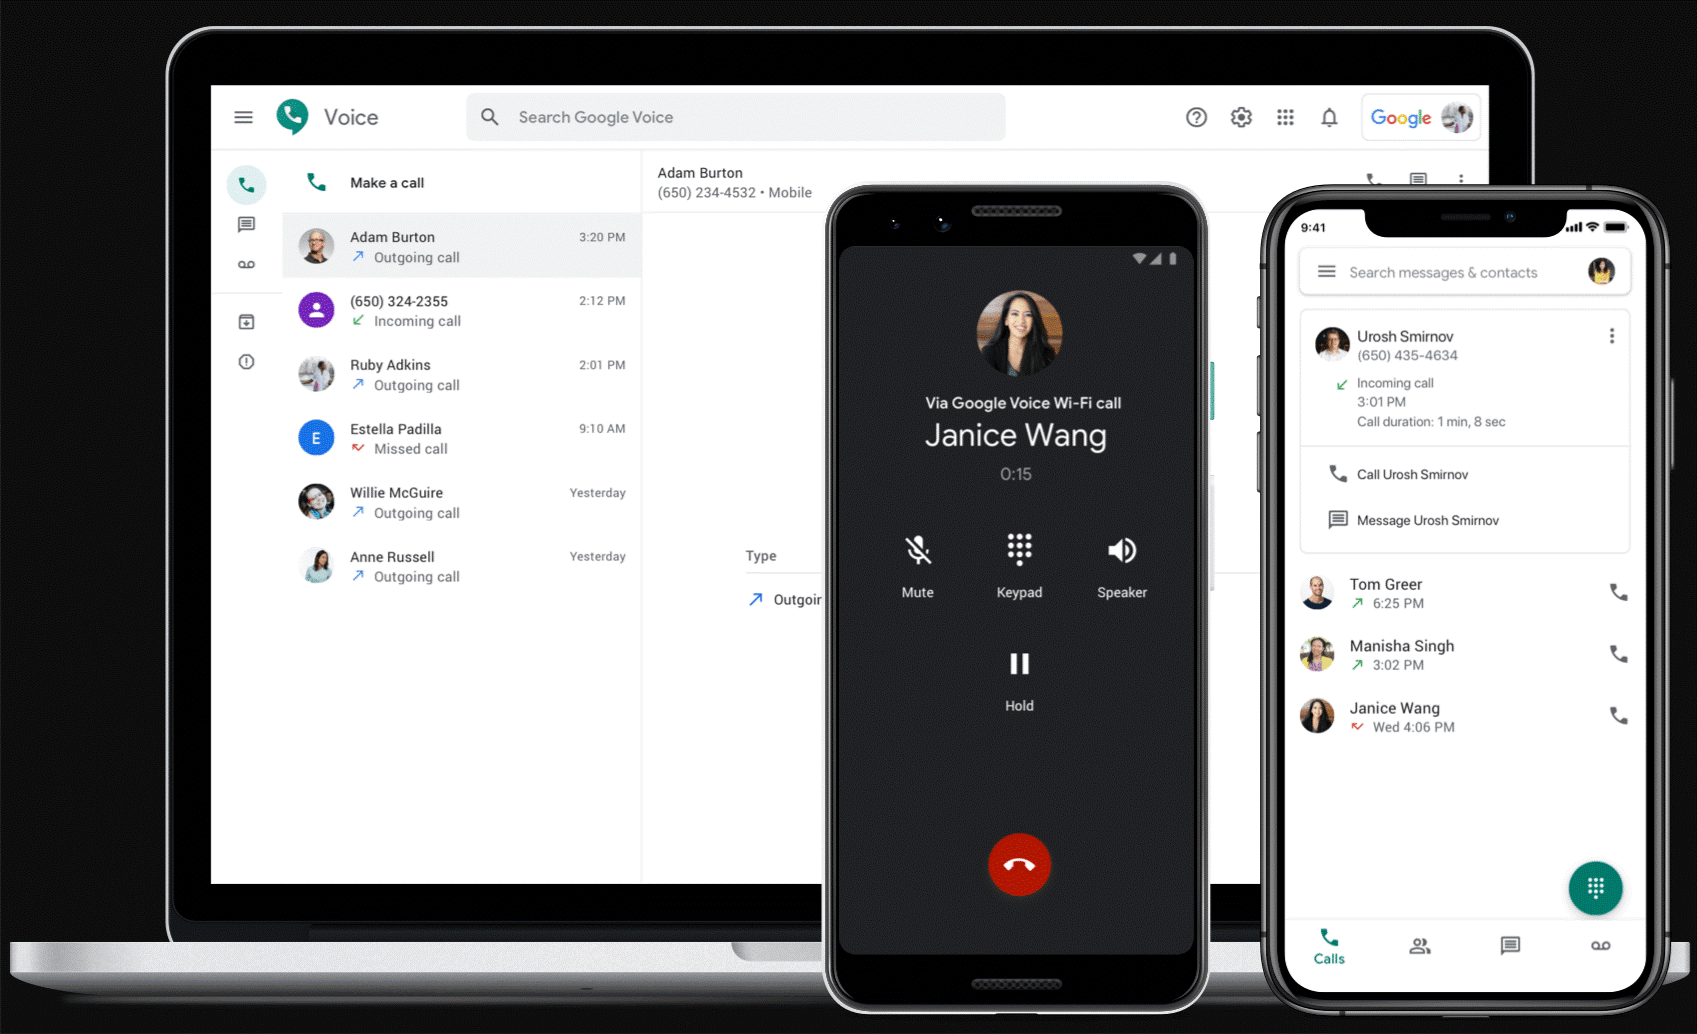 Google voice to call Australia from the US